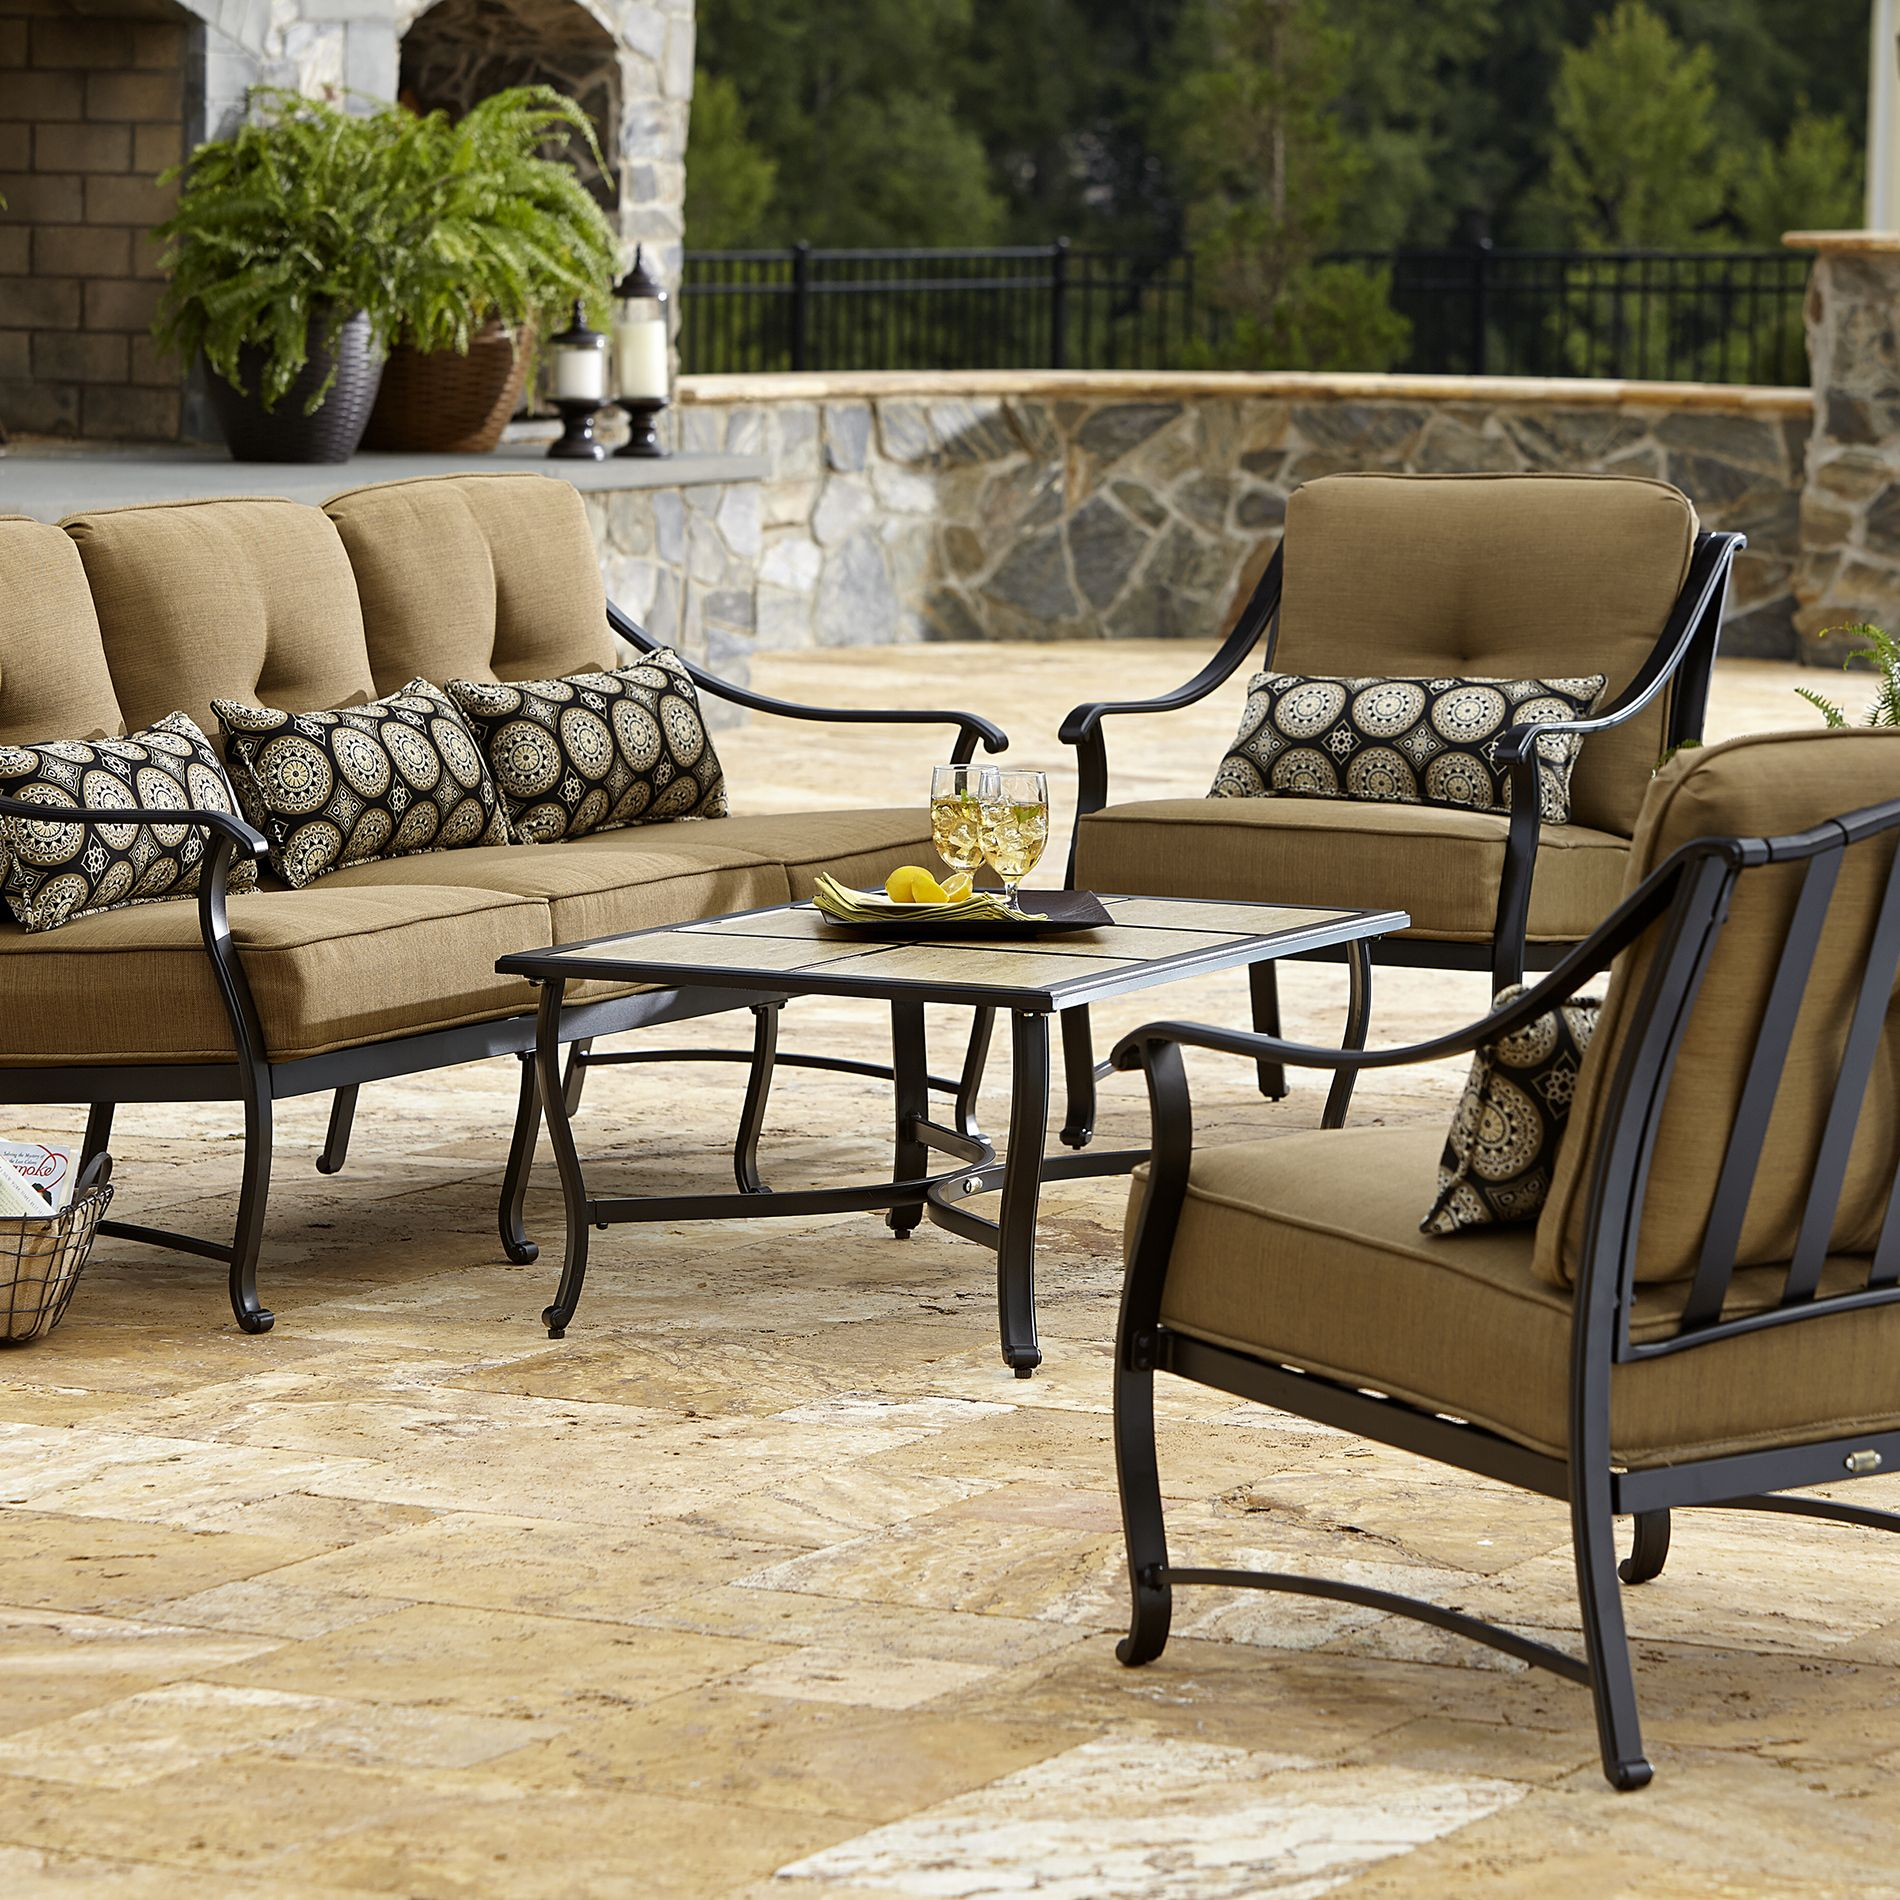 Lazy Boy Outdoor Furniture Covers Lowes Paint Colors Interior Check More At Http